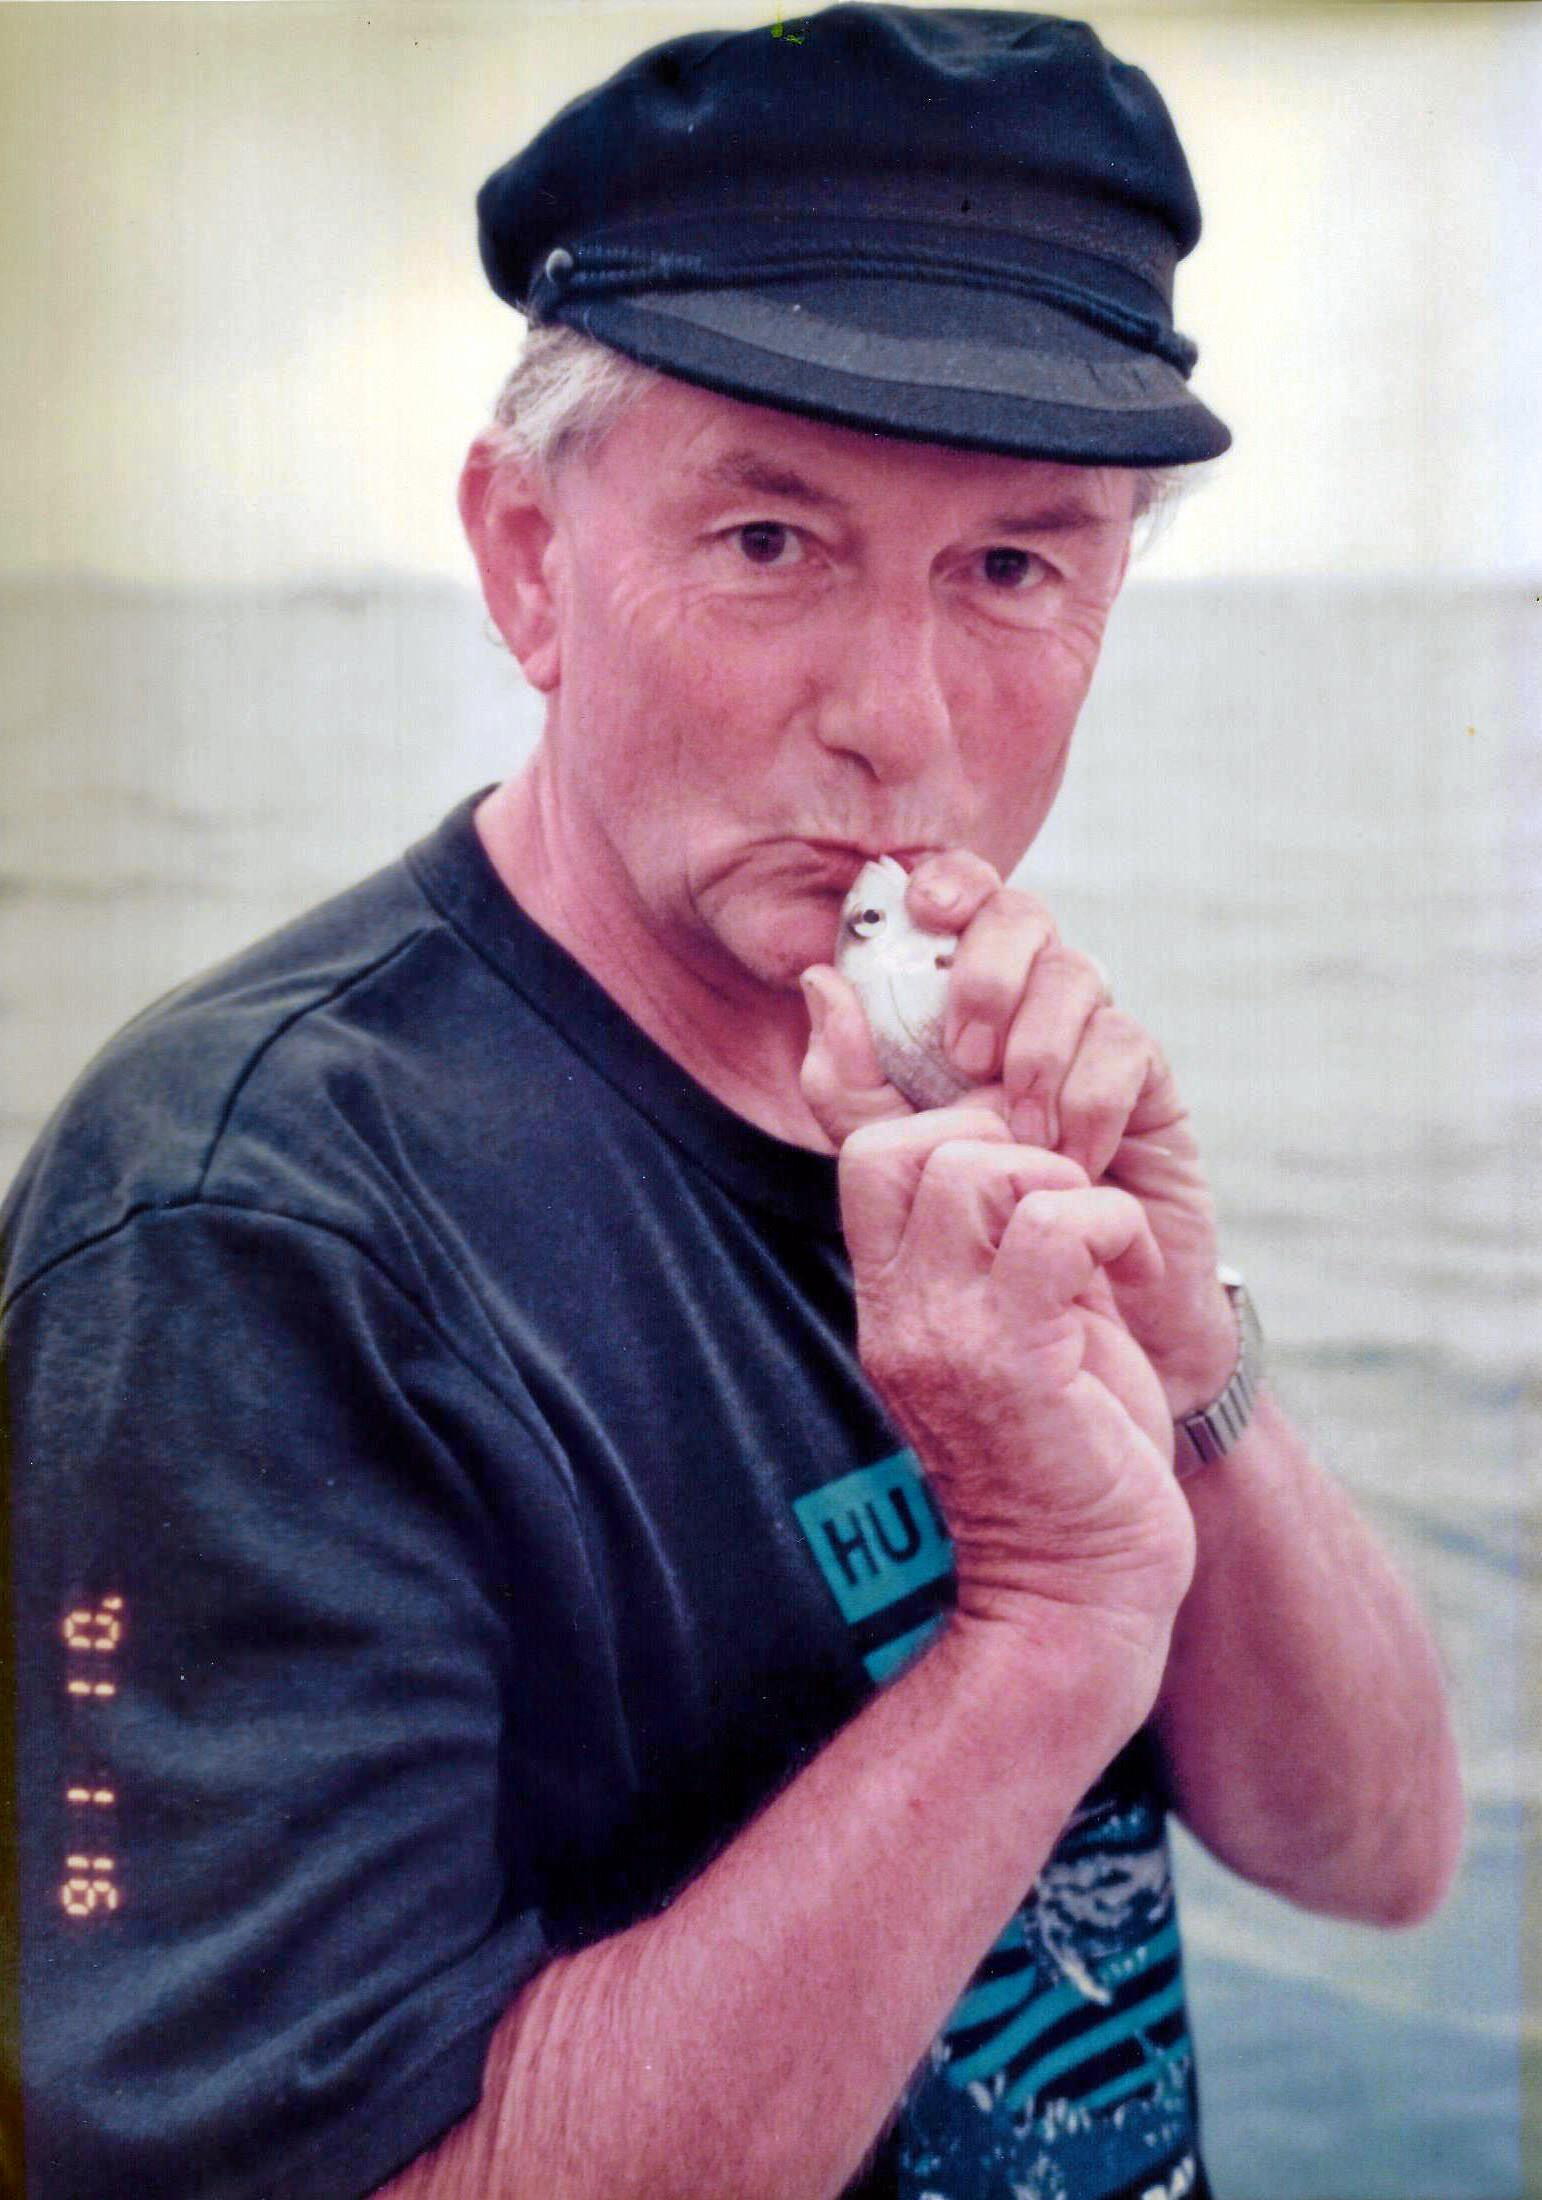 Barry giving a fish a kiss in 2001.